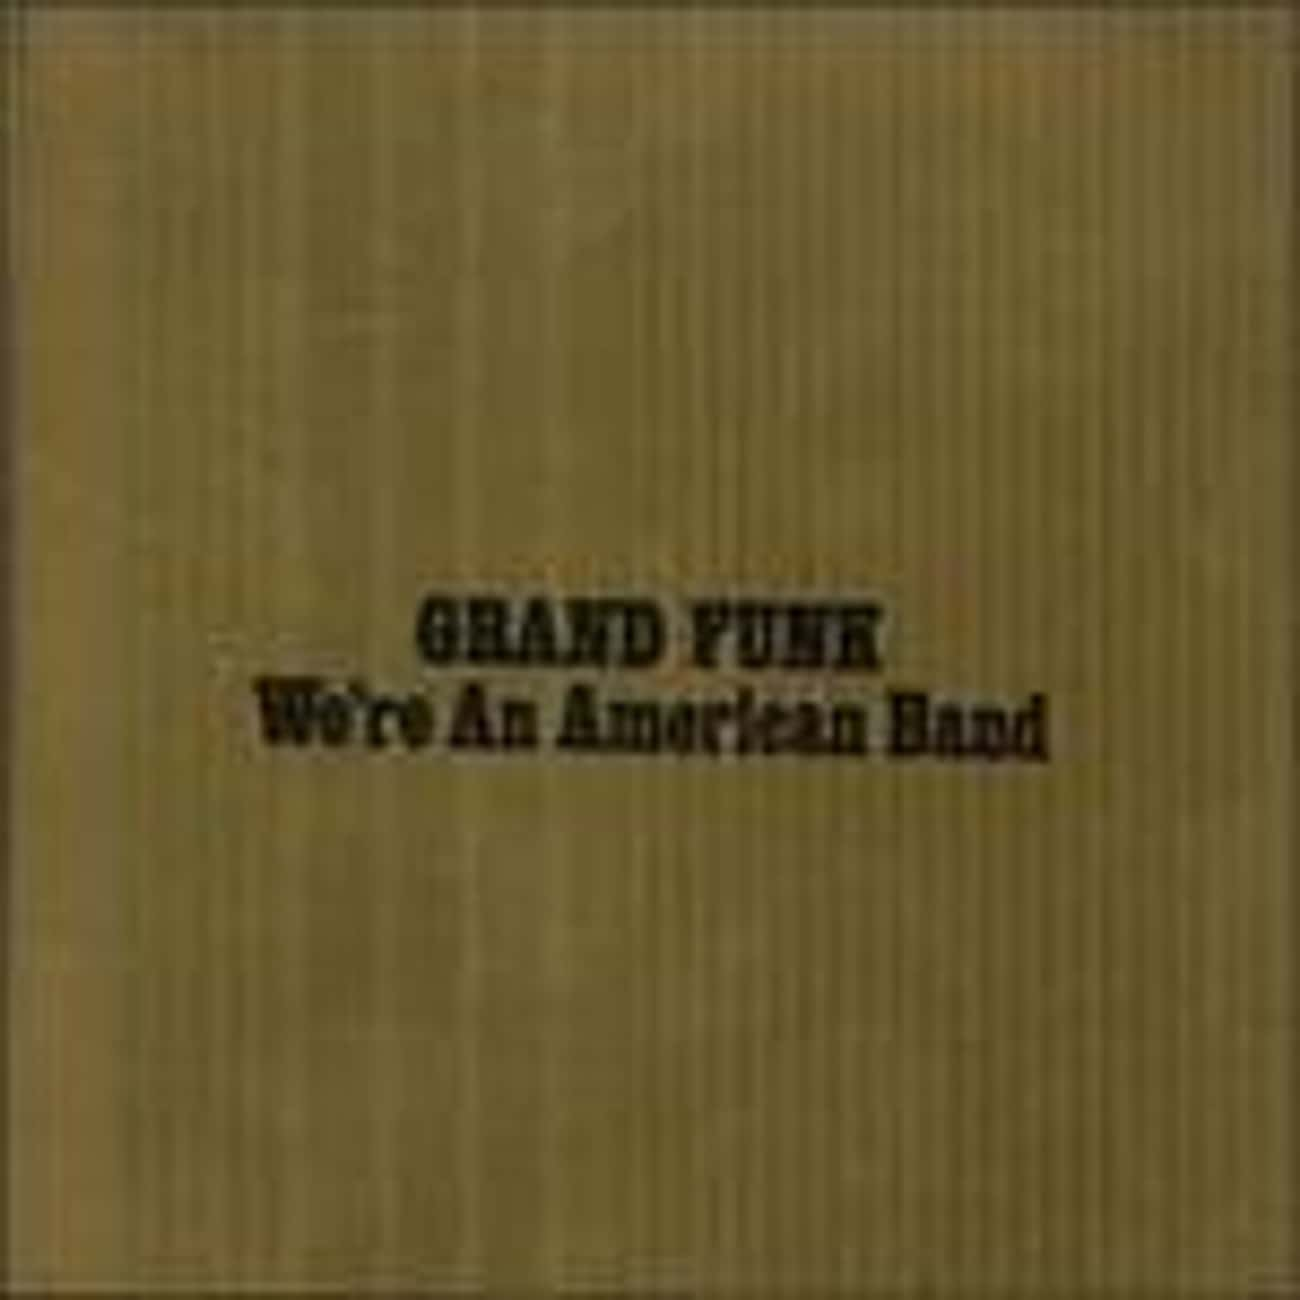 We're an American Band is listed (or ranked) 4 on the list The Best Grand Funk Railroad Albums of All Time